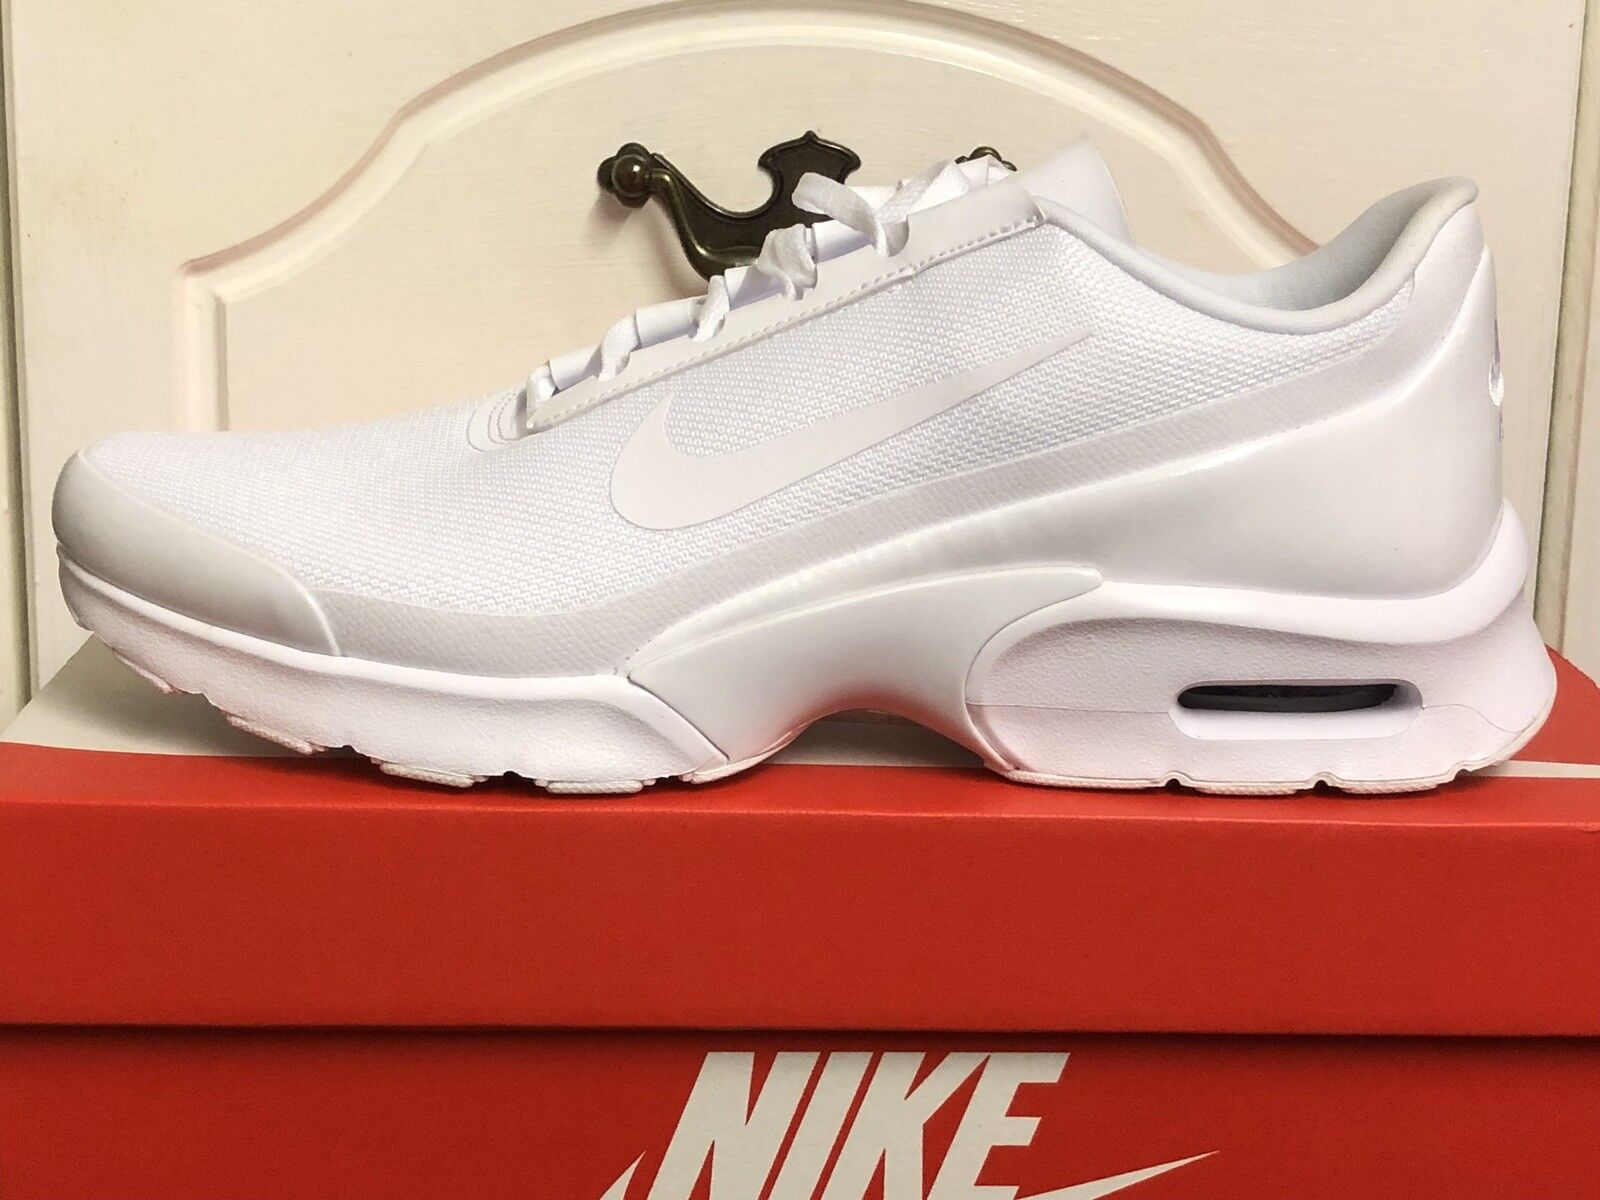 NIKE AIR MAX JEWEL EUR Femme TRAINERS Baskets chaussures9 EUR JEWEL 44 71e994